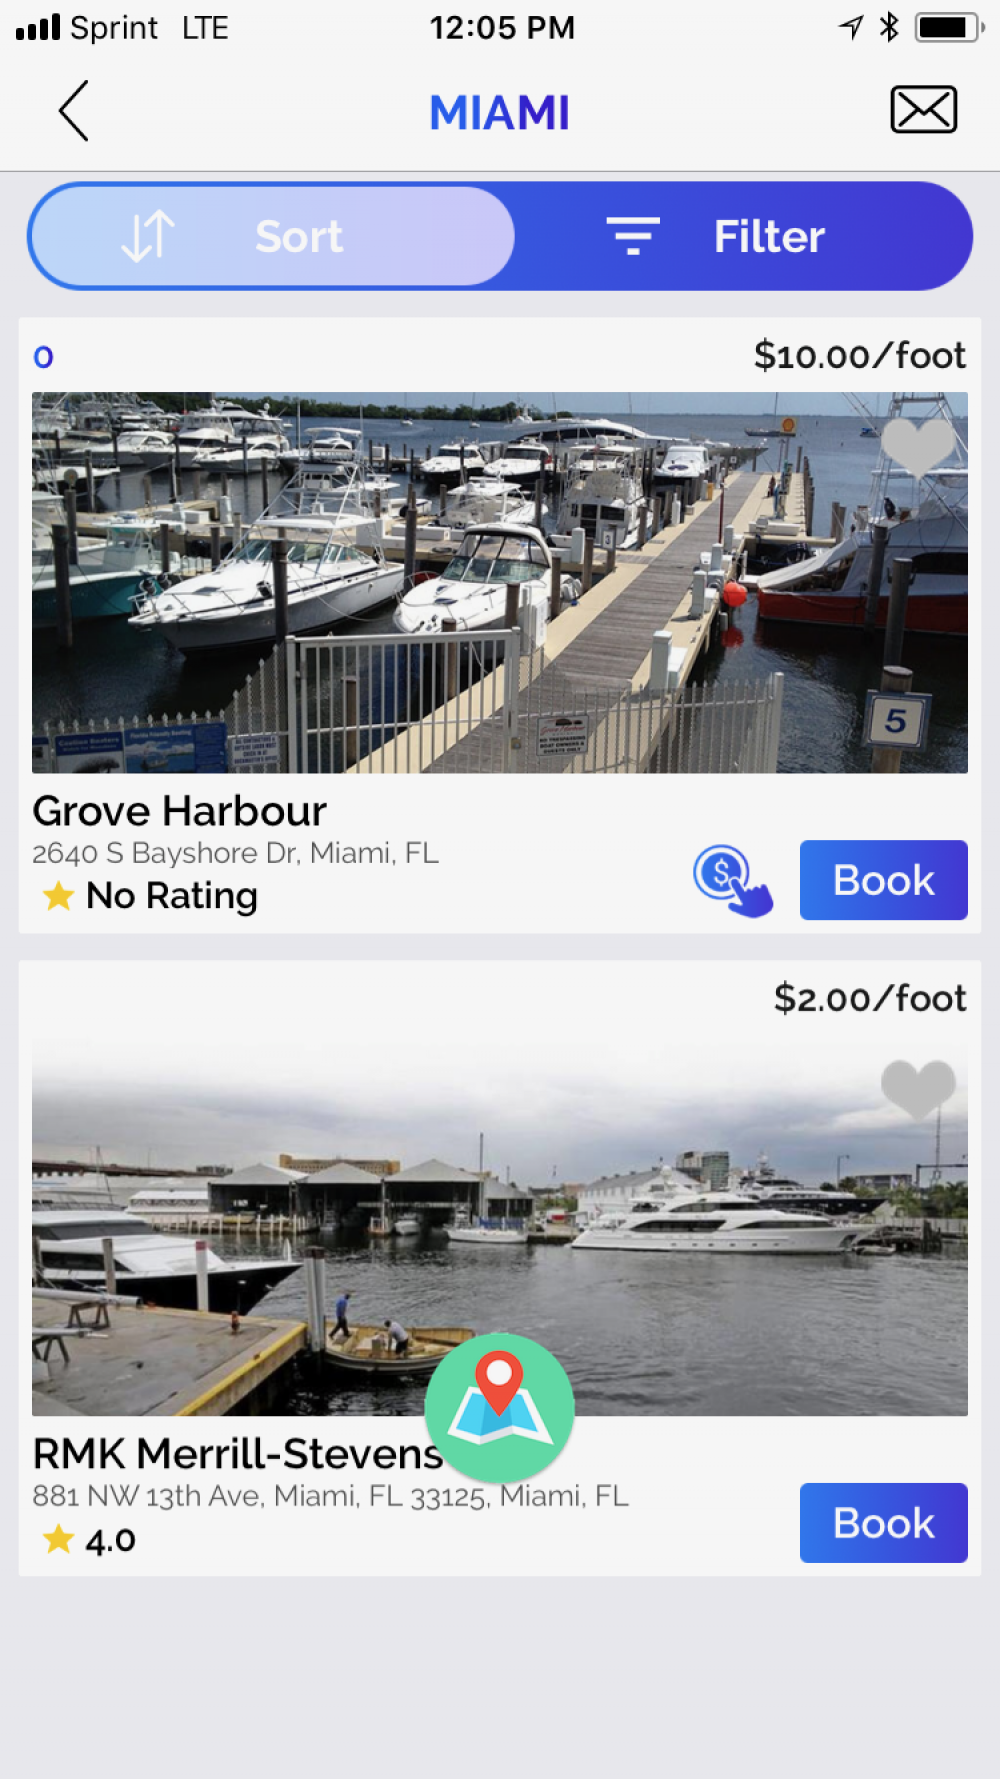 gpdock-the-new-marina-reservation-app-launches-in-miami